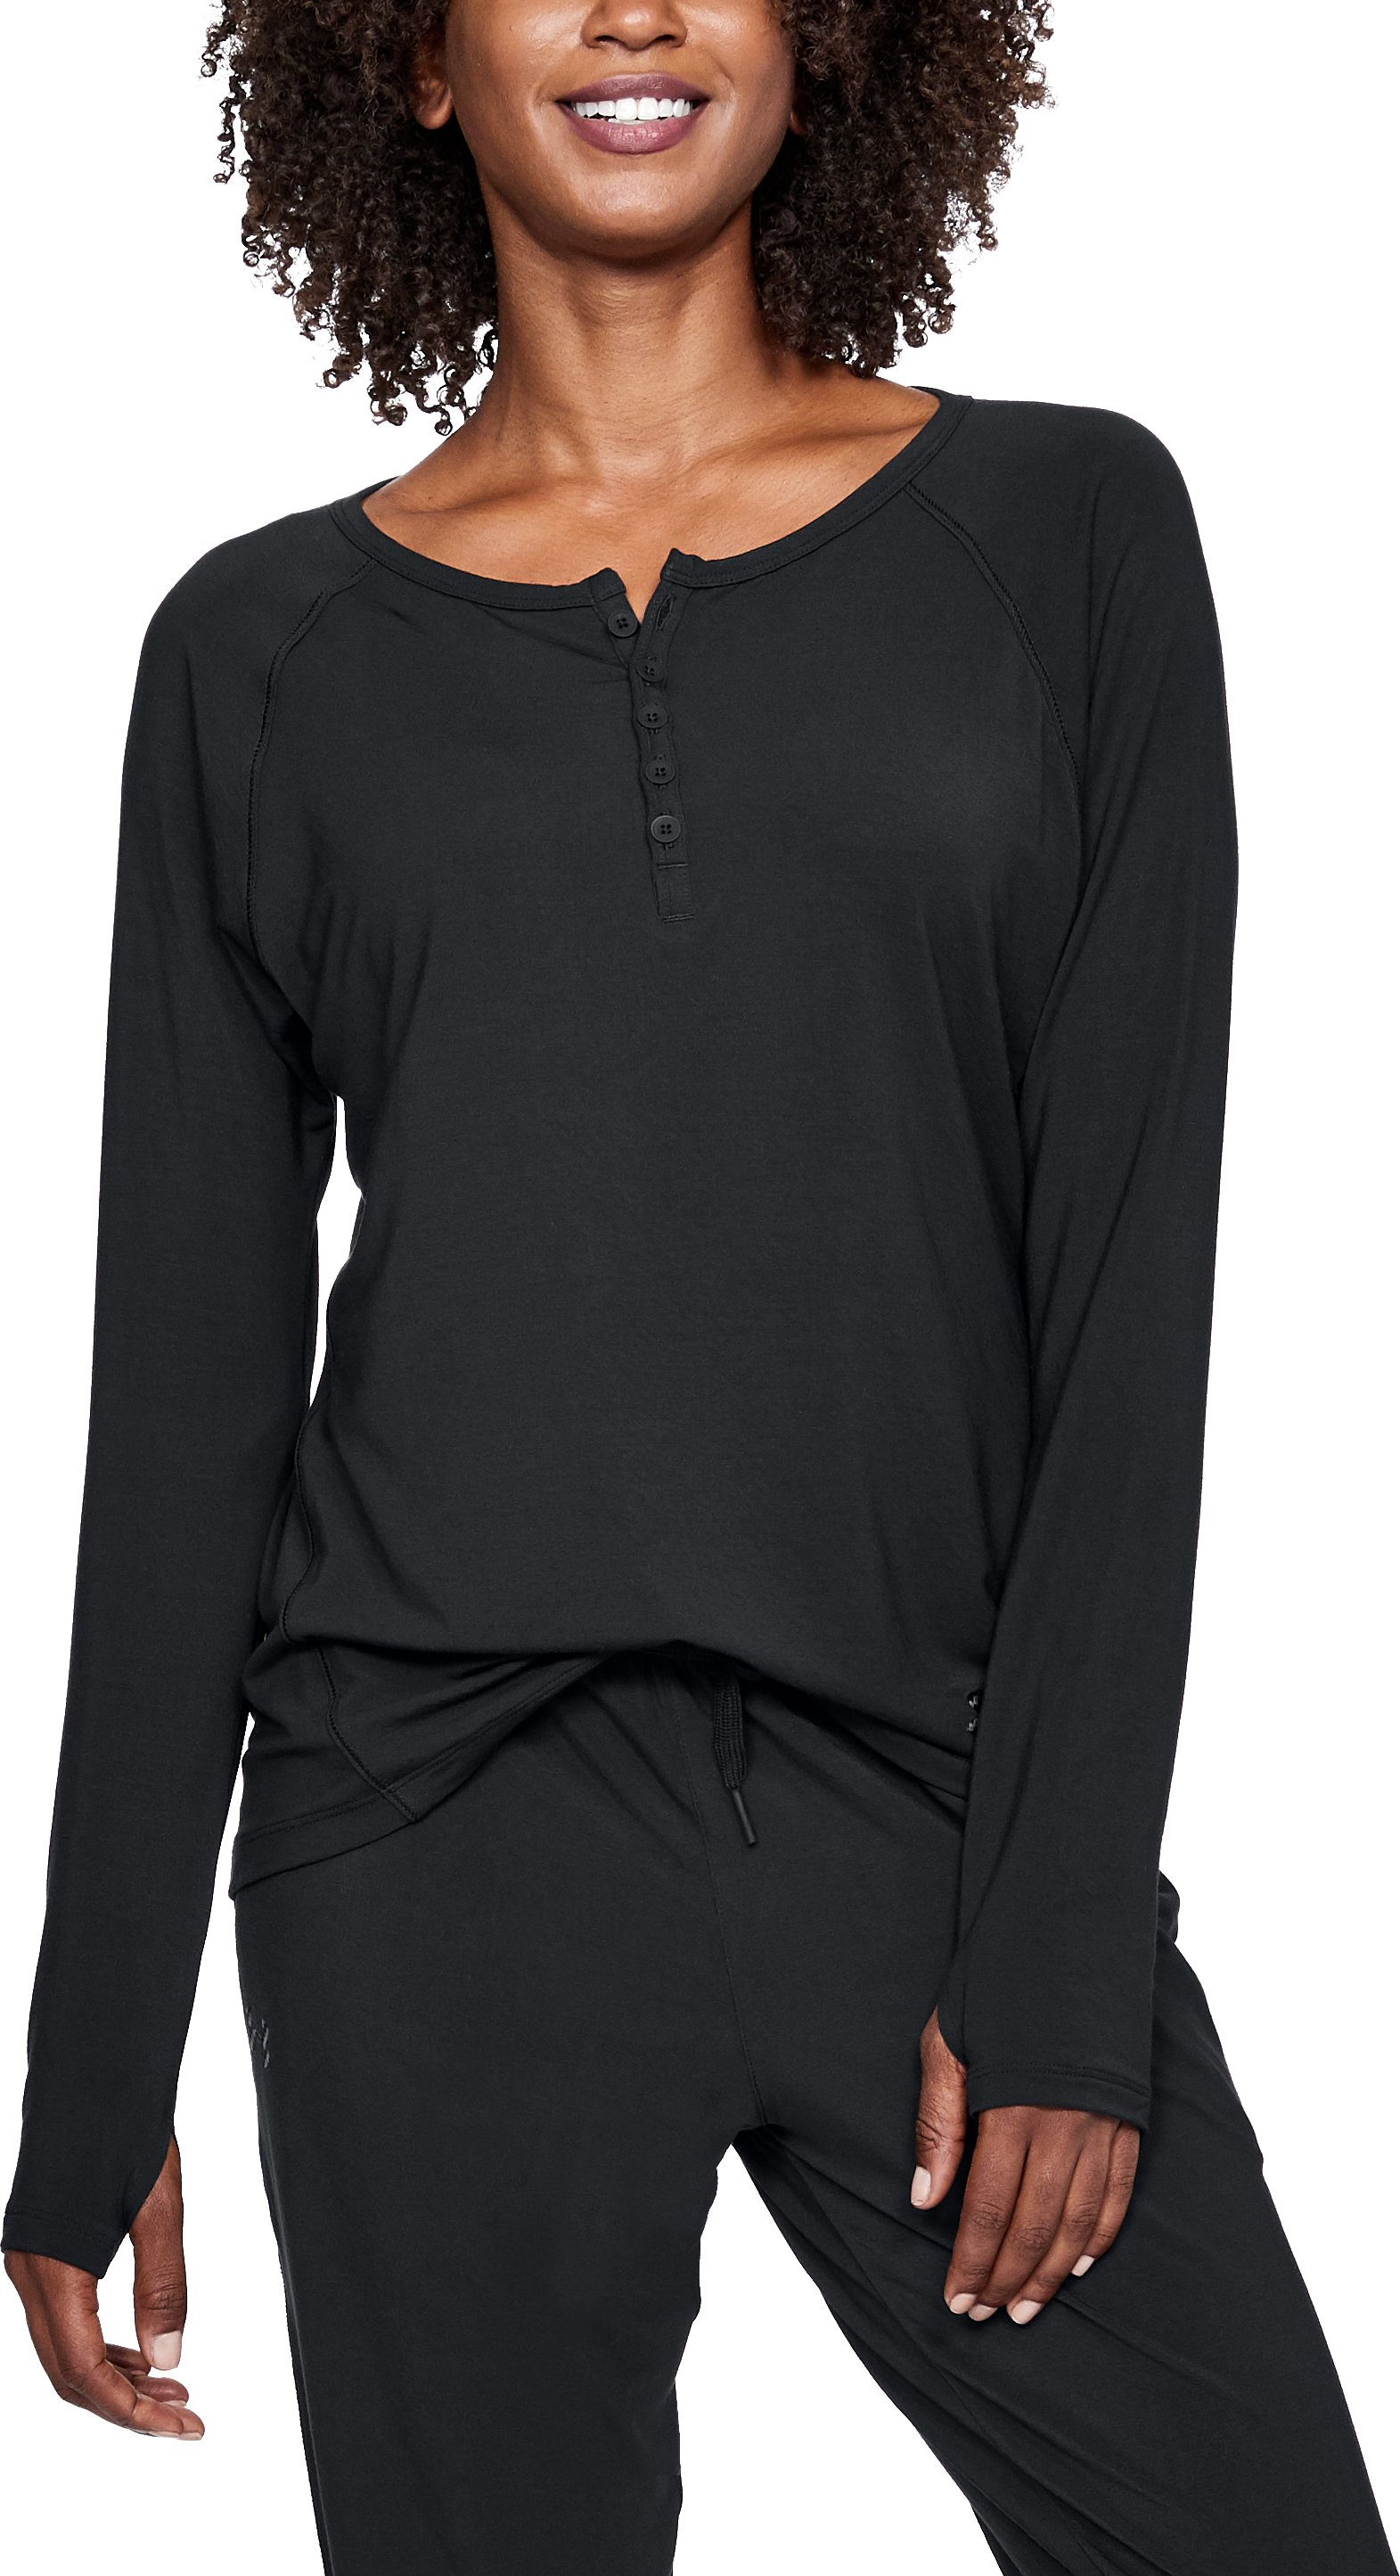 Women's Athlete Recovery Ultra Comfort Sleepwear Henley, Black